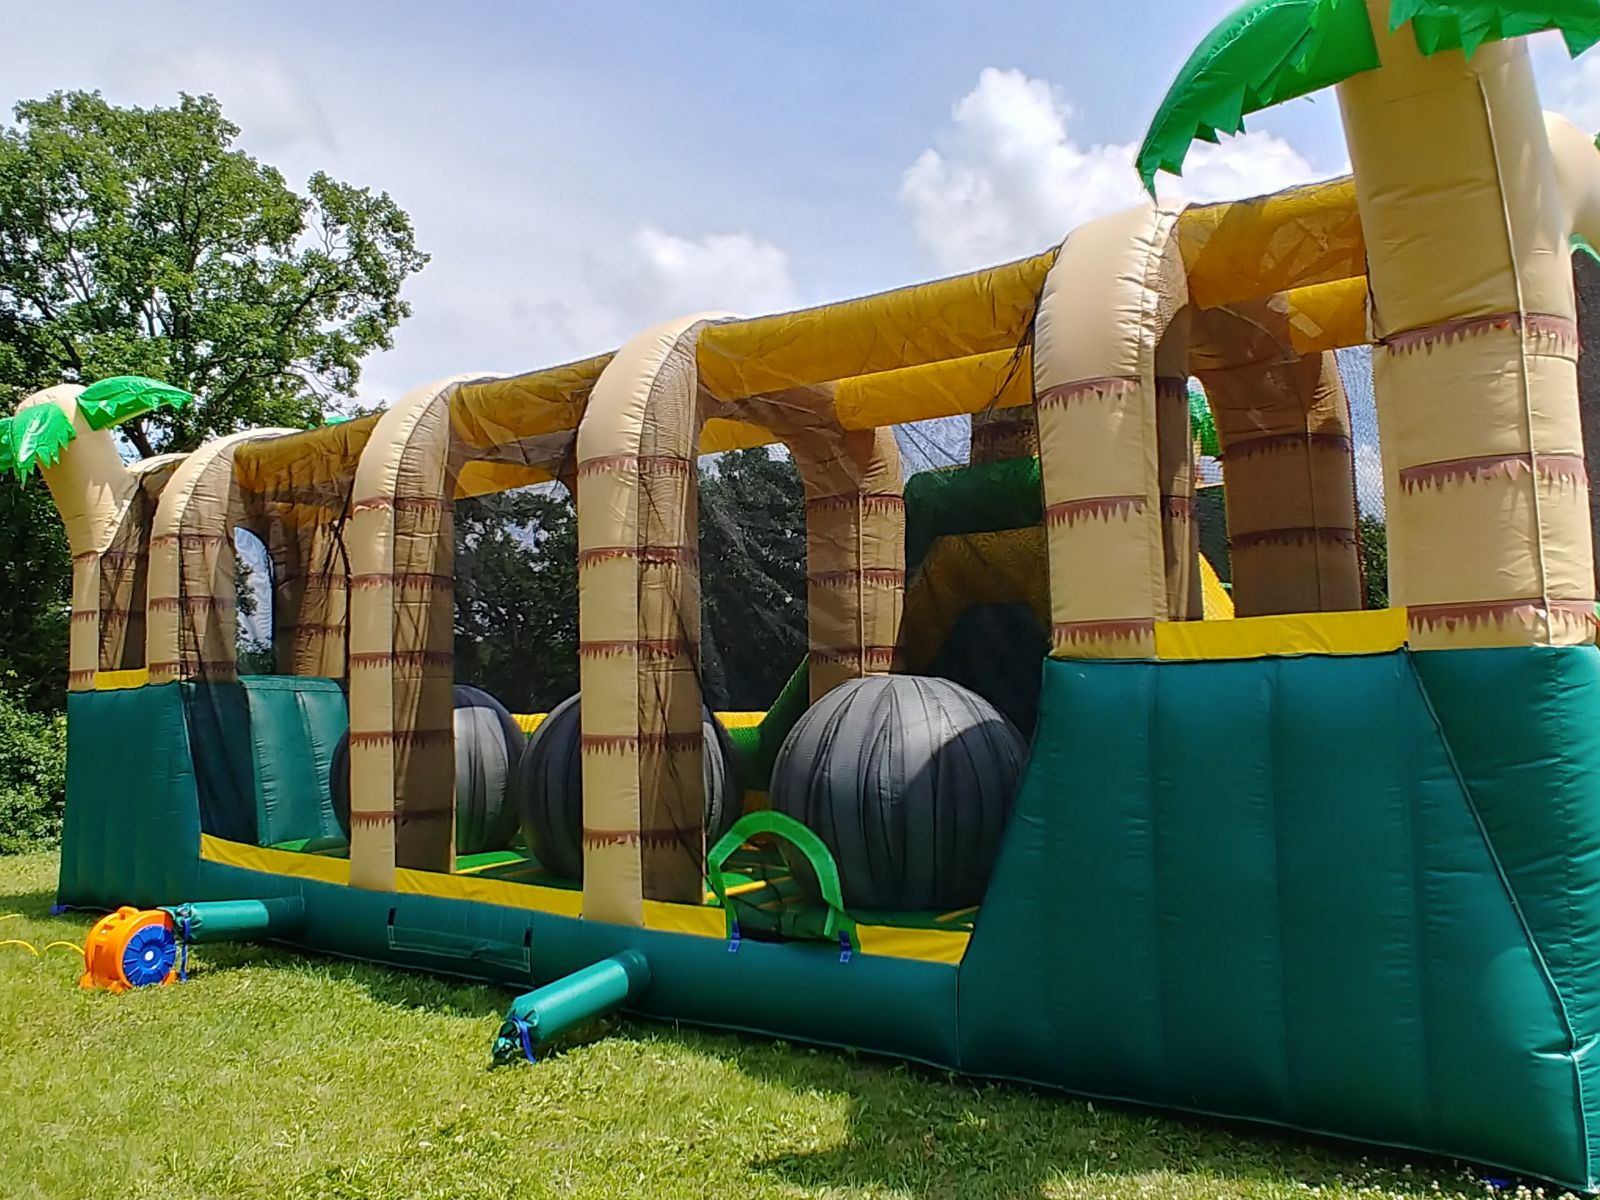 Giant inflatable ball challenge inside Hop N' Rock Obstacle Course